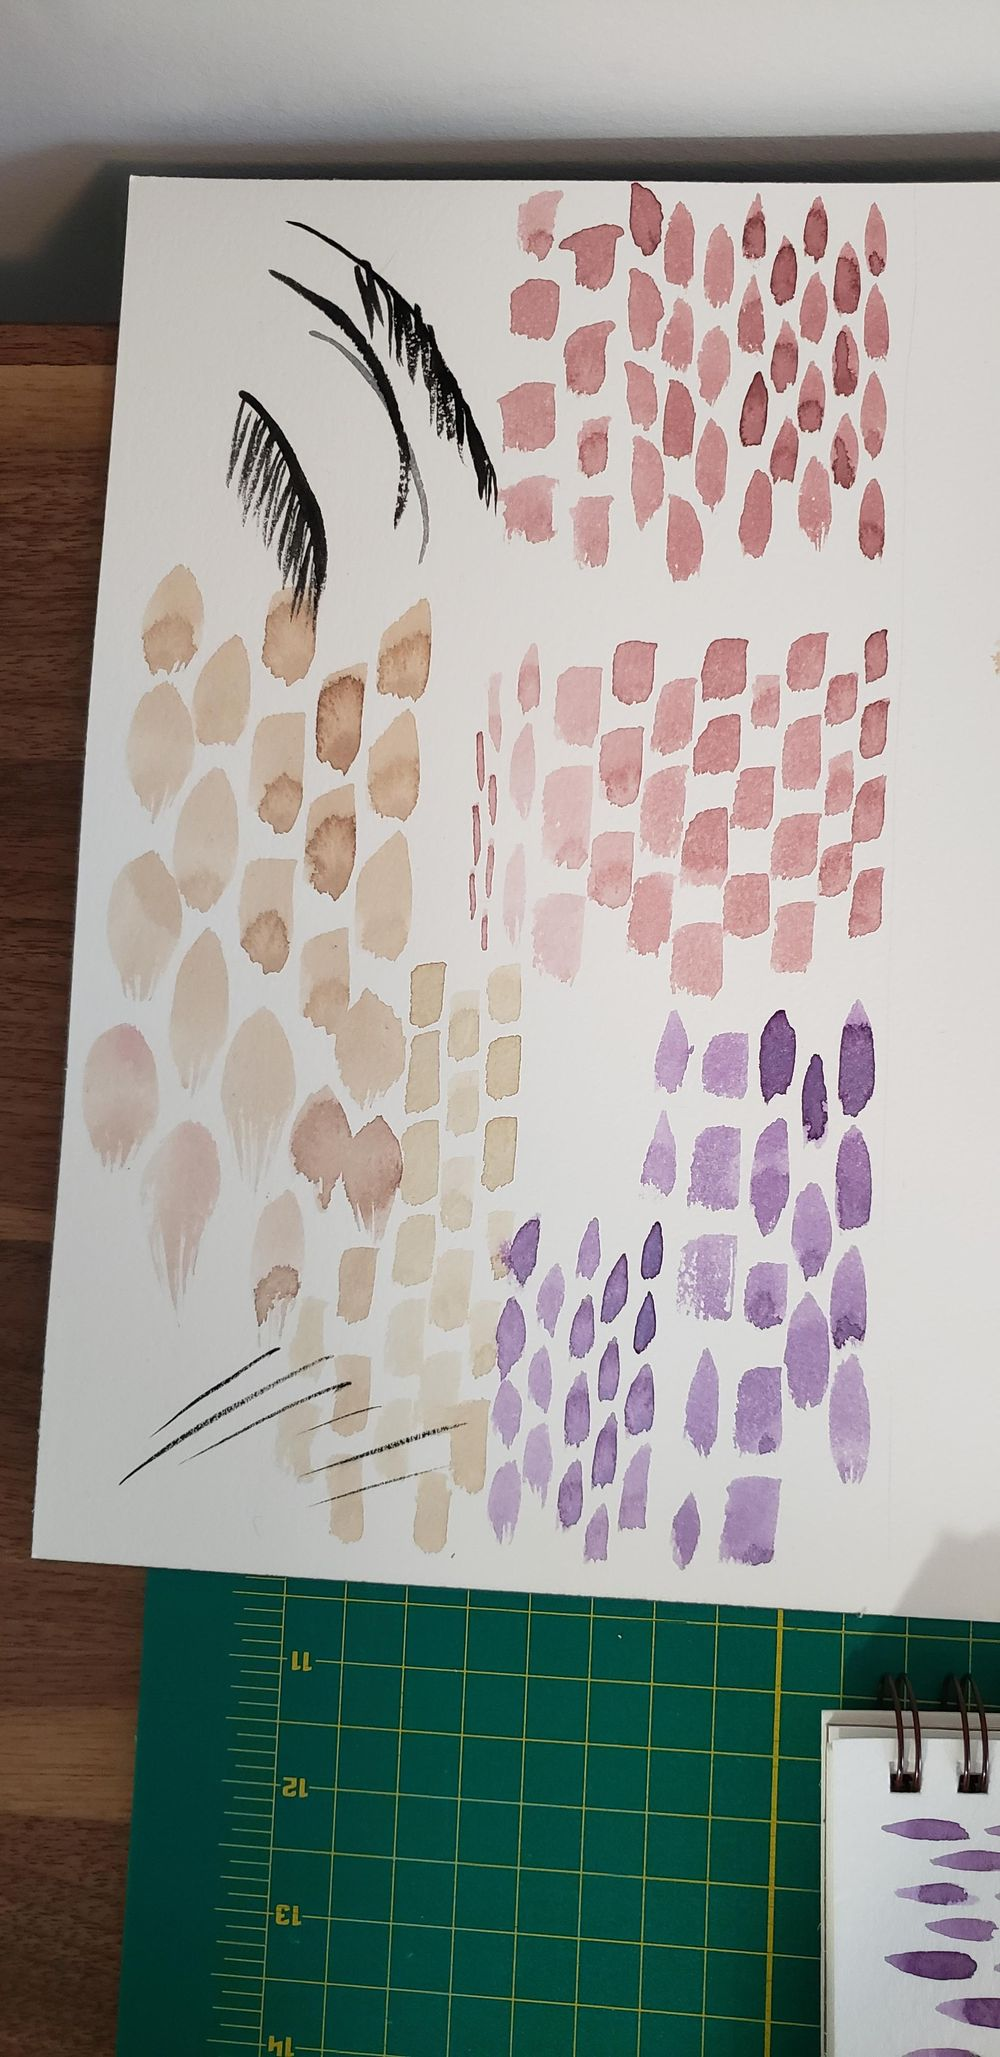 14 watercolor workouts - image 2 - student project